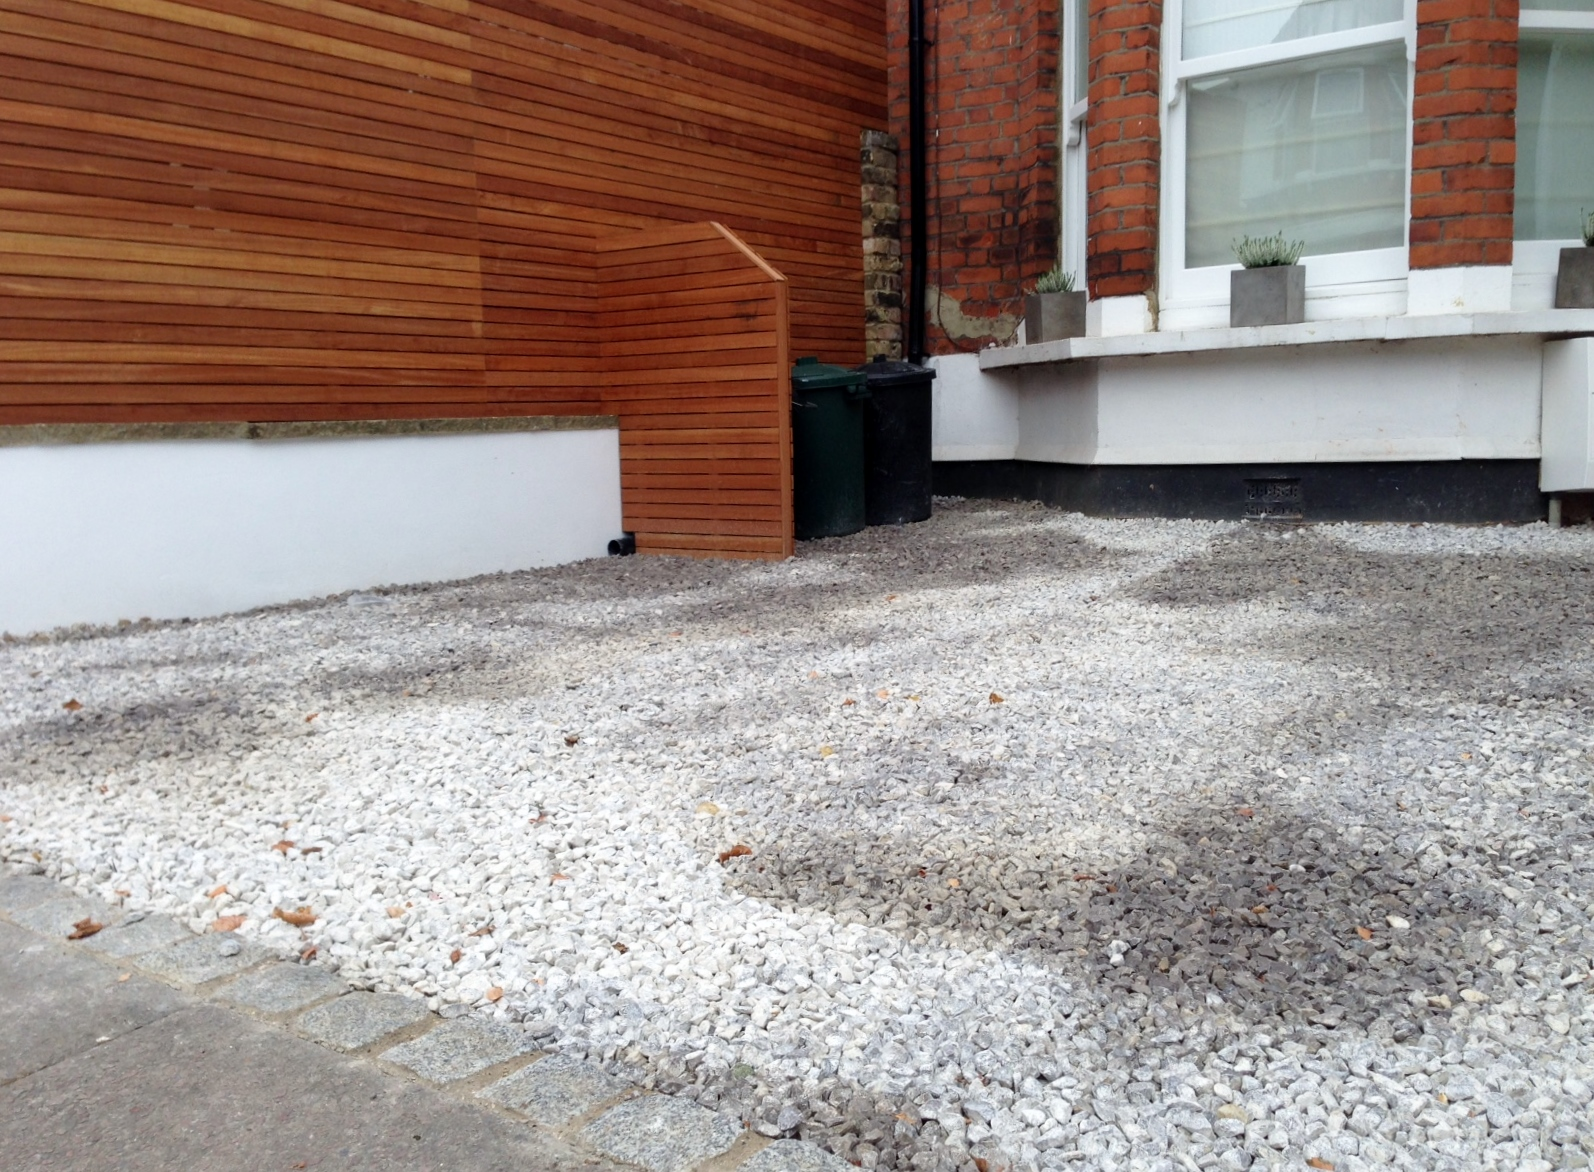 front garden drivewat gravel travertine paving path hardwood privacy screen trellis tooting london (33)